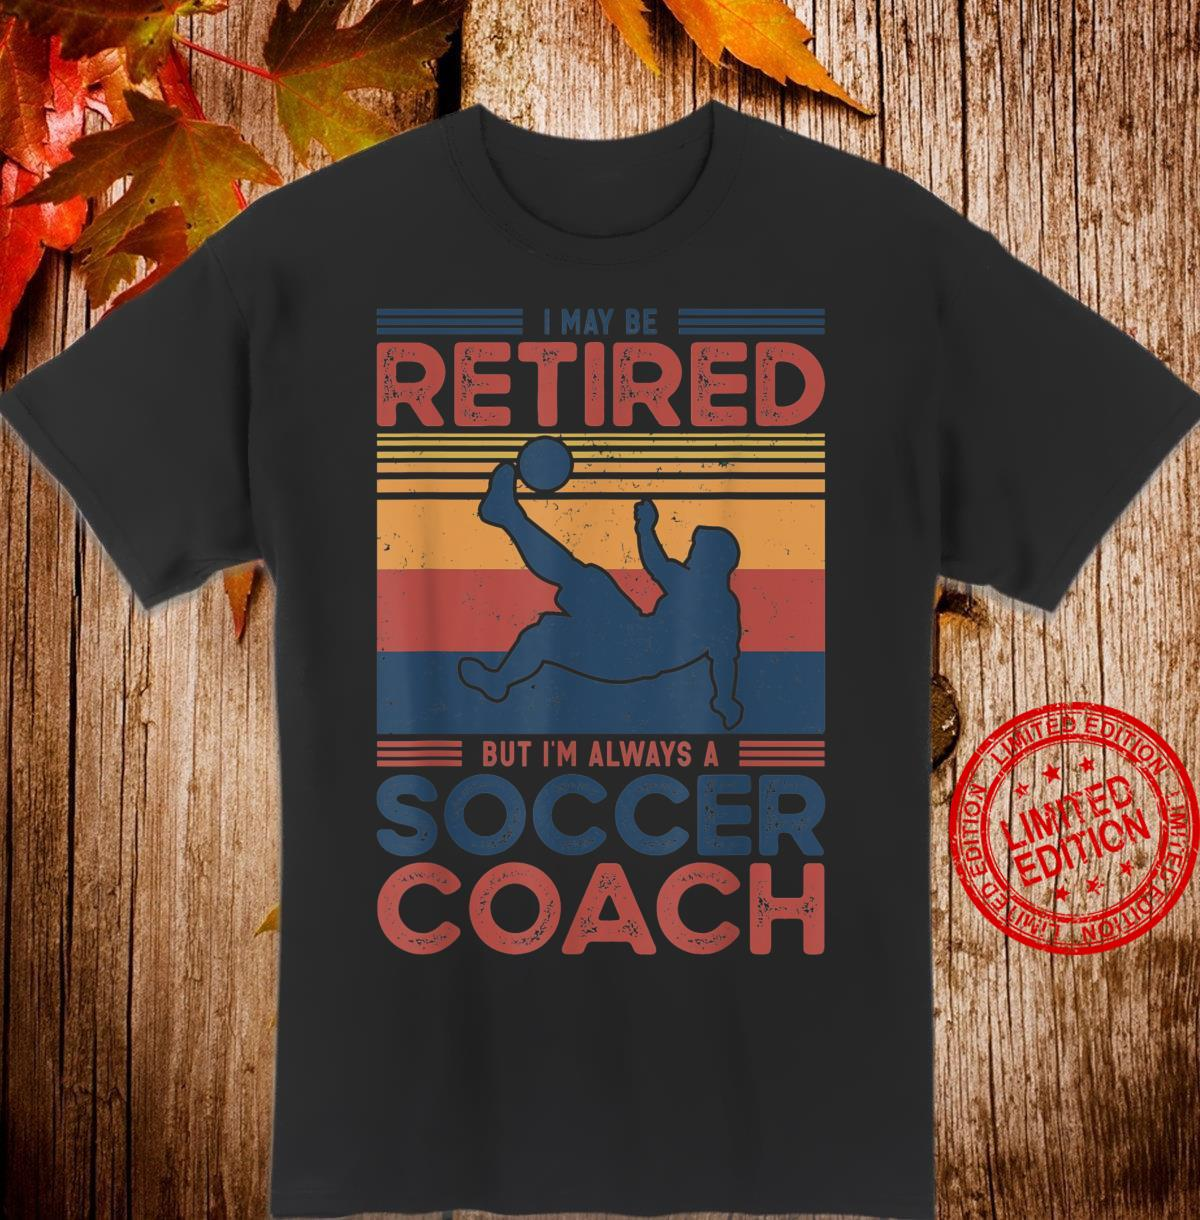 I May Be Retired But I'm Always a Soccer Coach Shirt